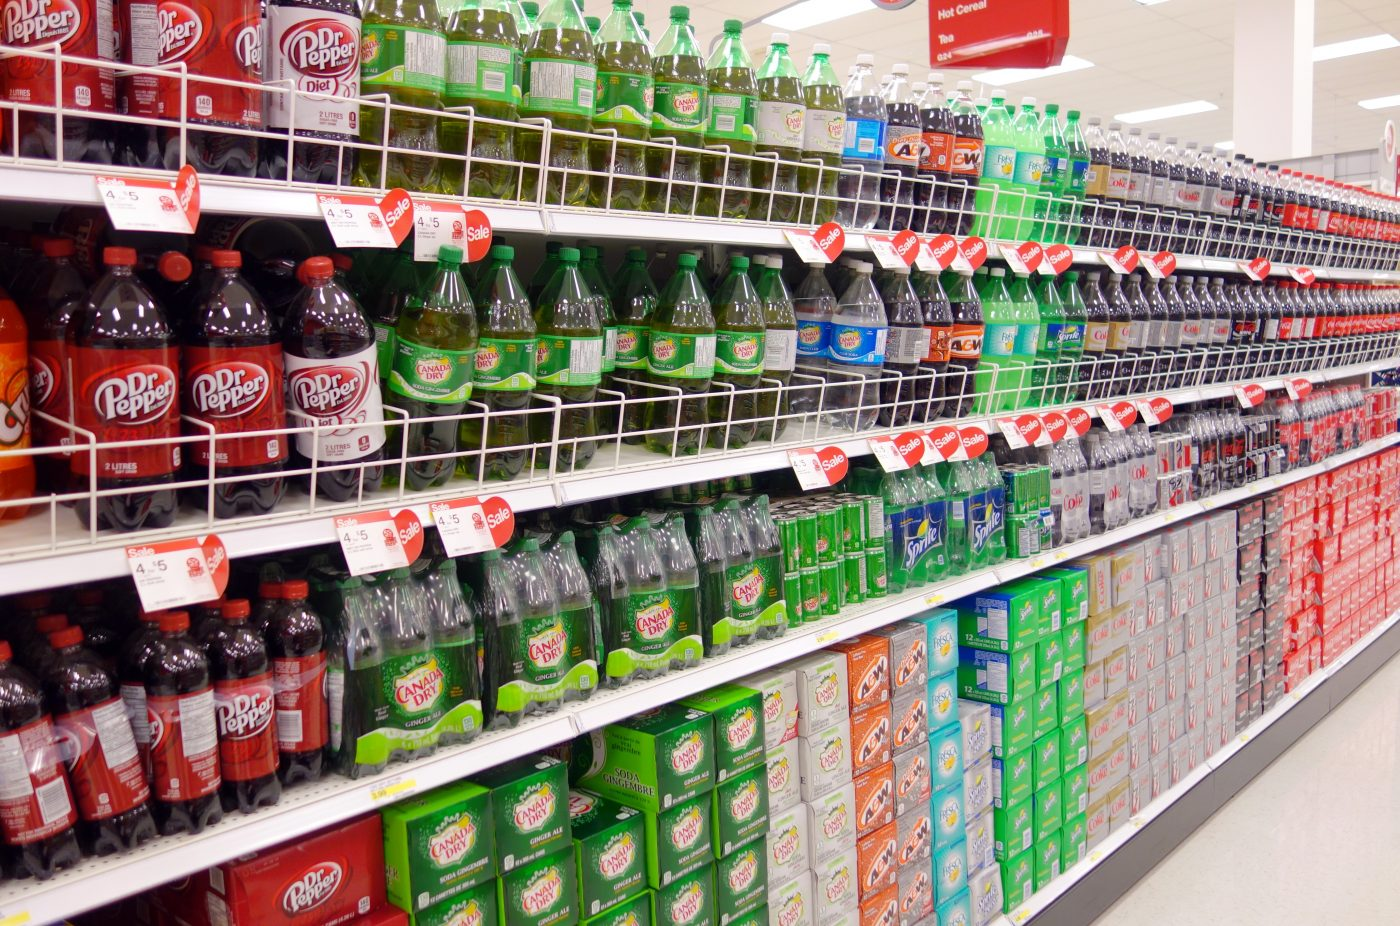 Canadian Diabetes Association Recommends Tax on Sugar-Sweetened Beverages to Prevent Type 2 Diabetes